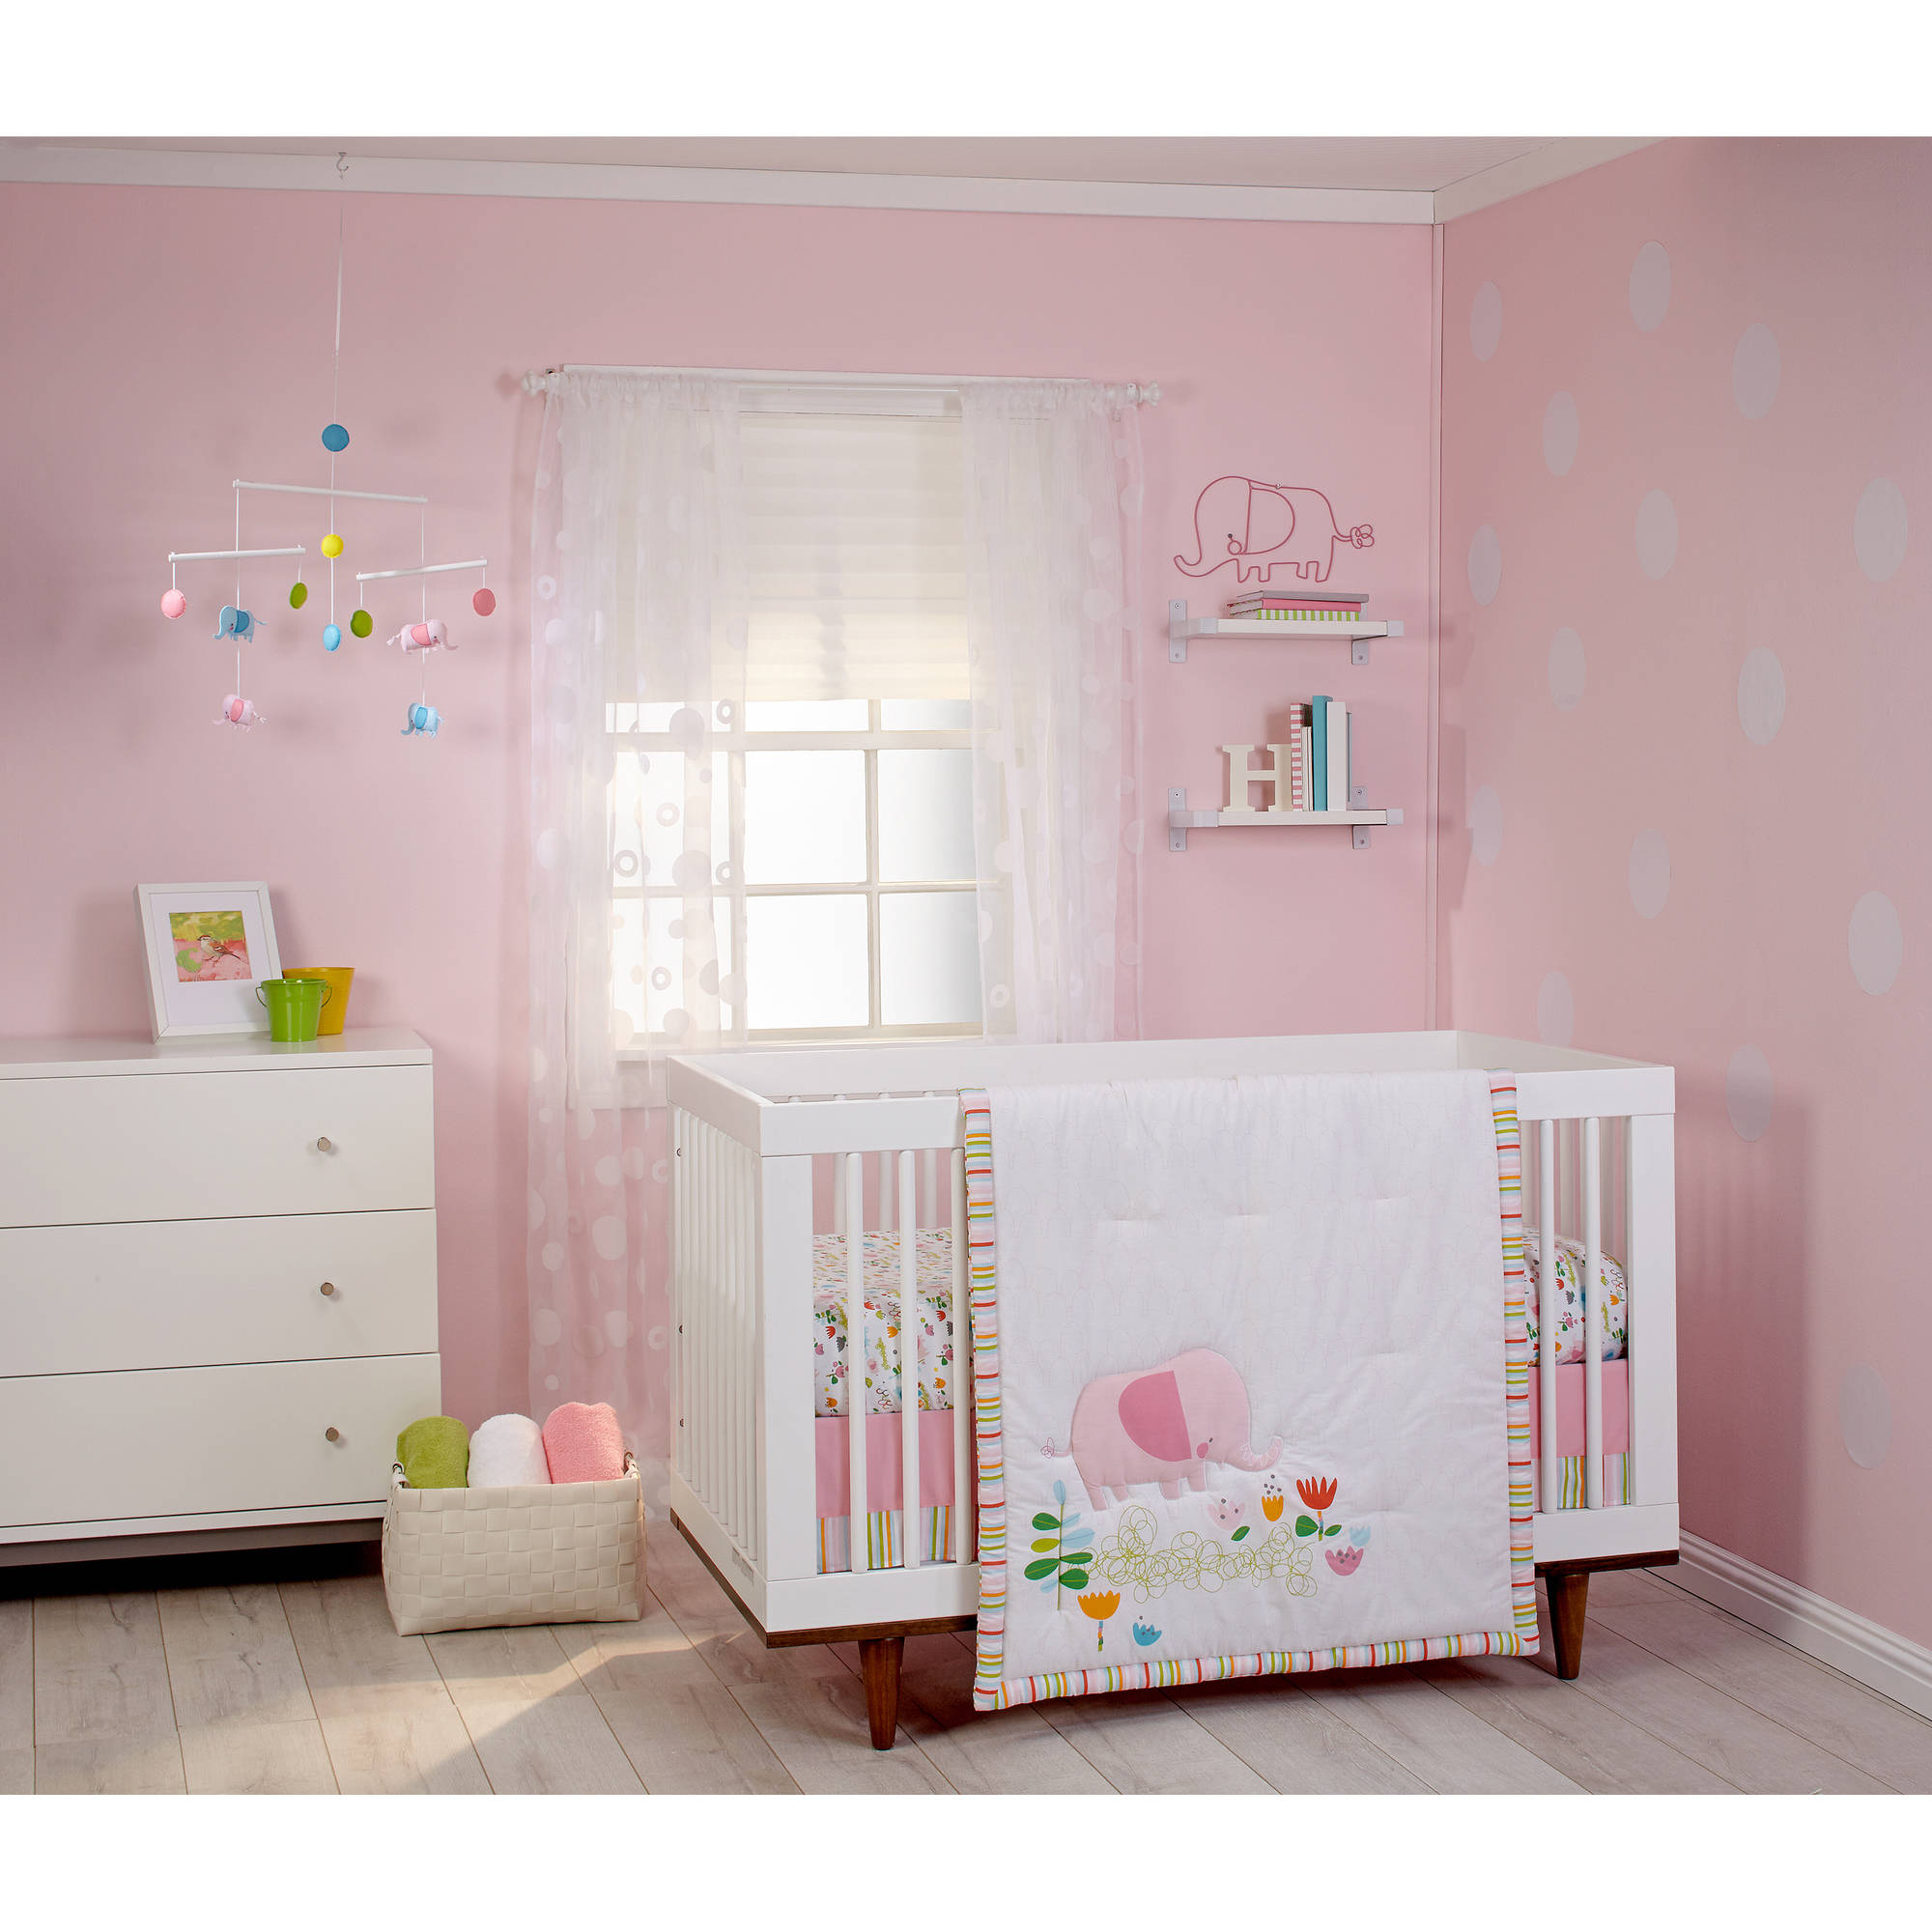 sorelle recall furniture bedroom cape baby cod pine with vista cribs dollar million welcoming born crib jcpenney italia new